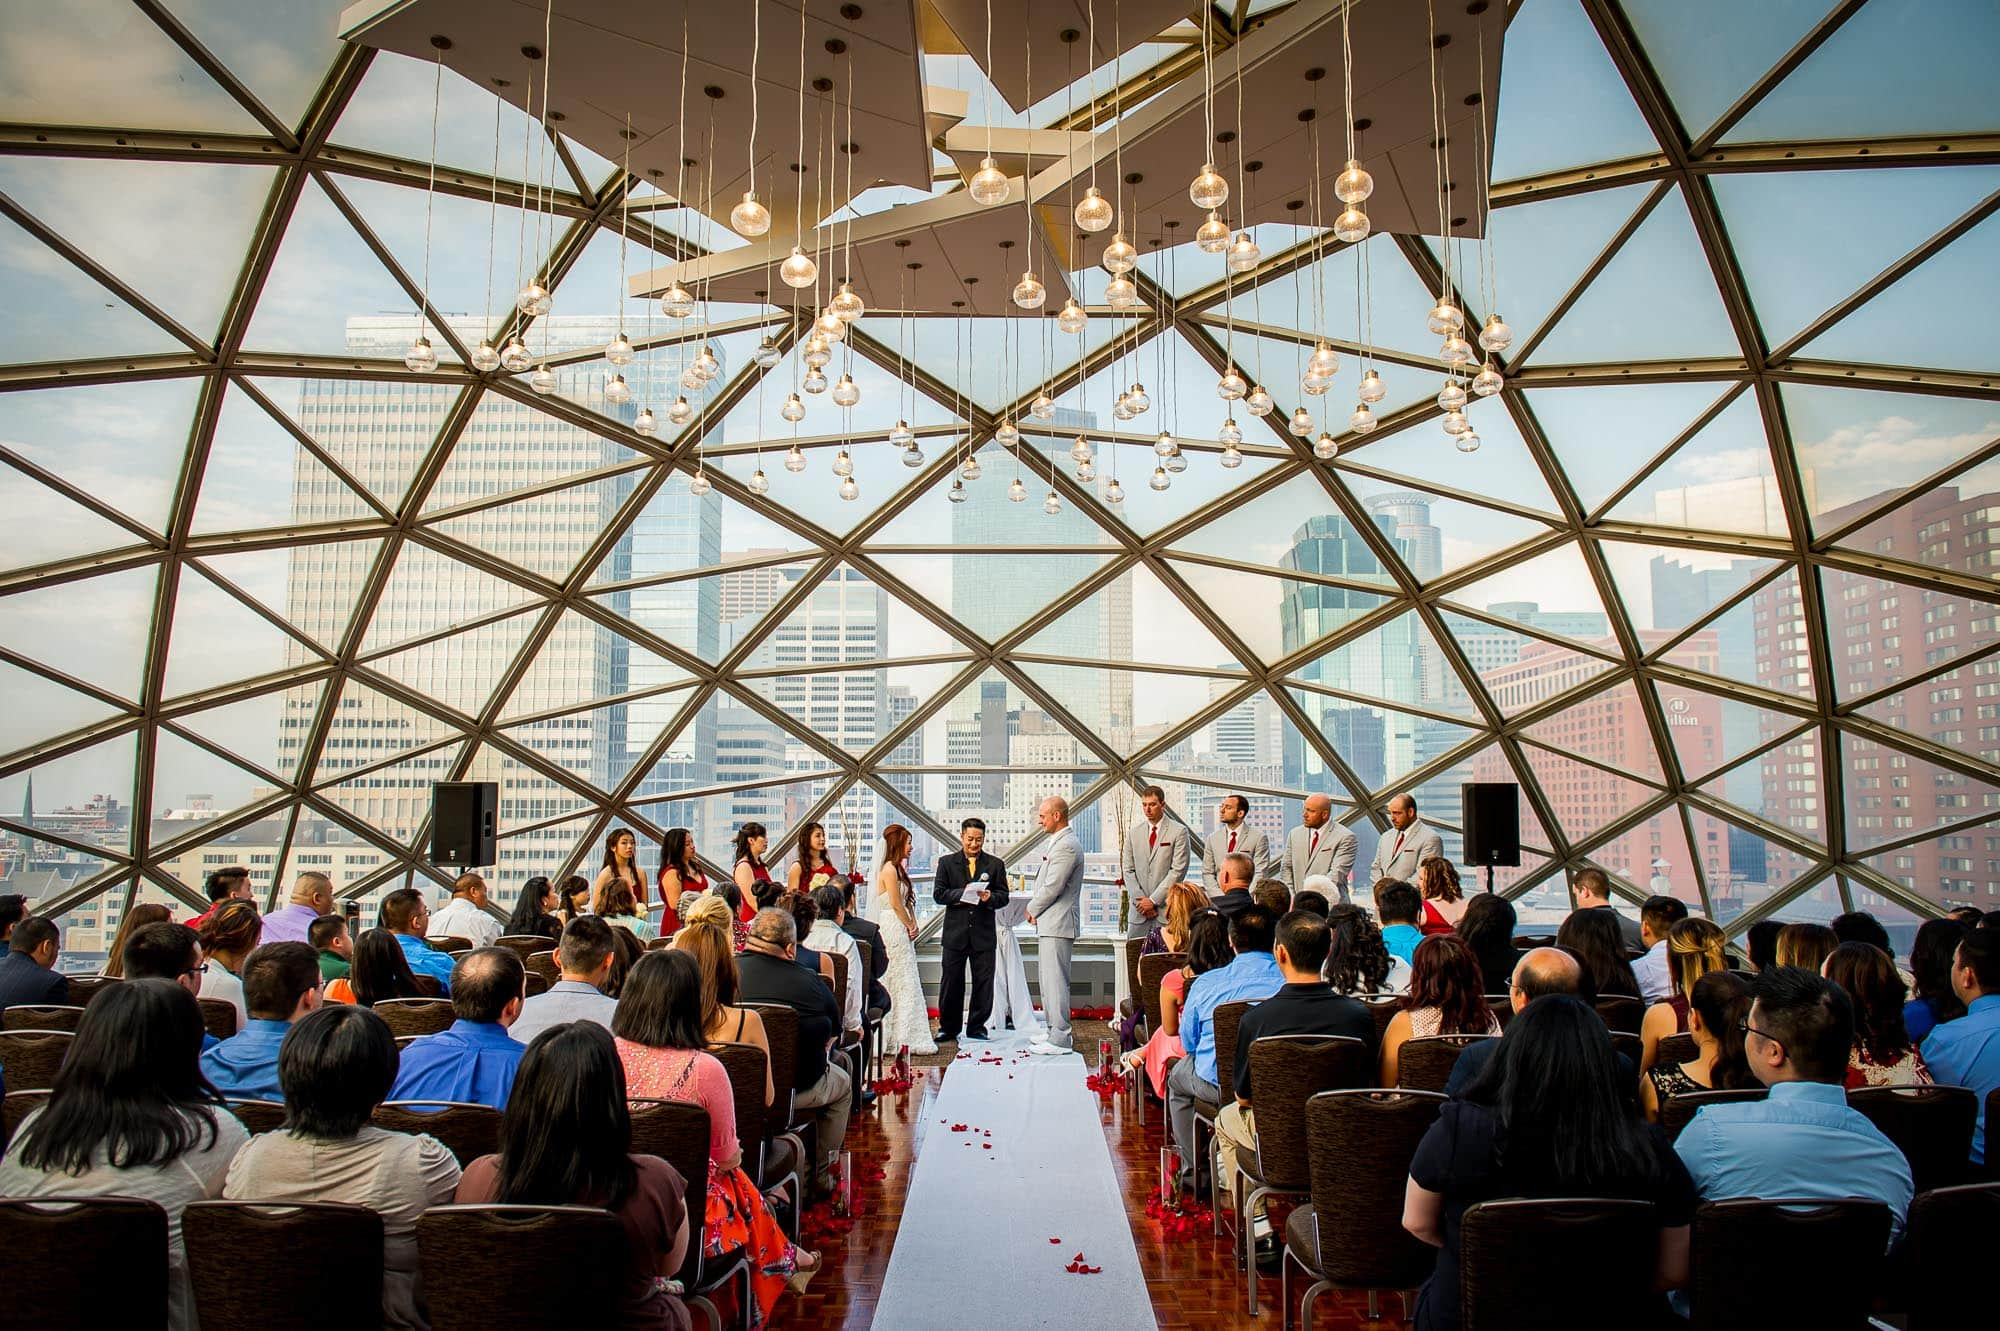 Millenium hotel wedding ceremony in the dome with downtown Minneapolis in the background